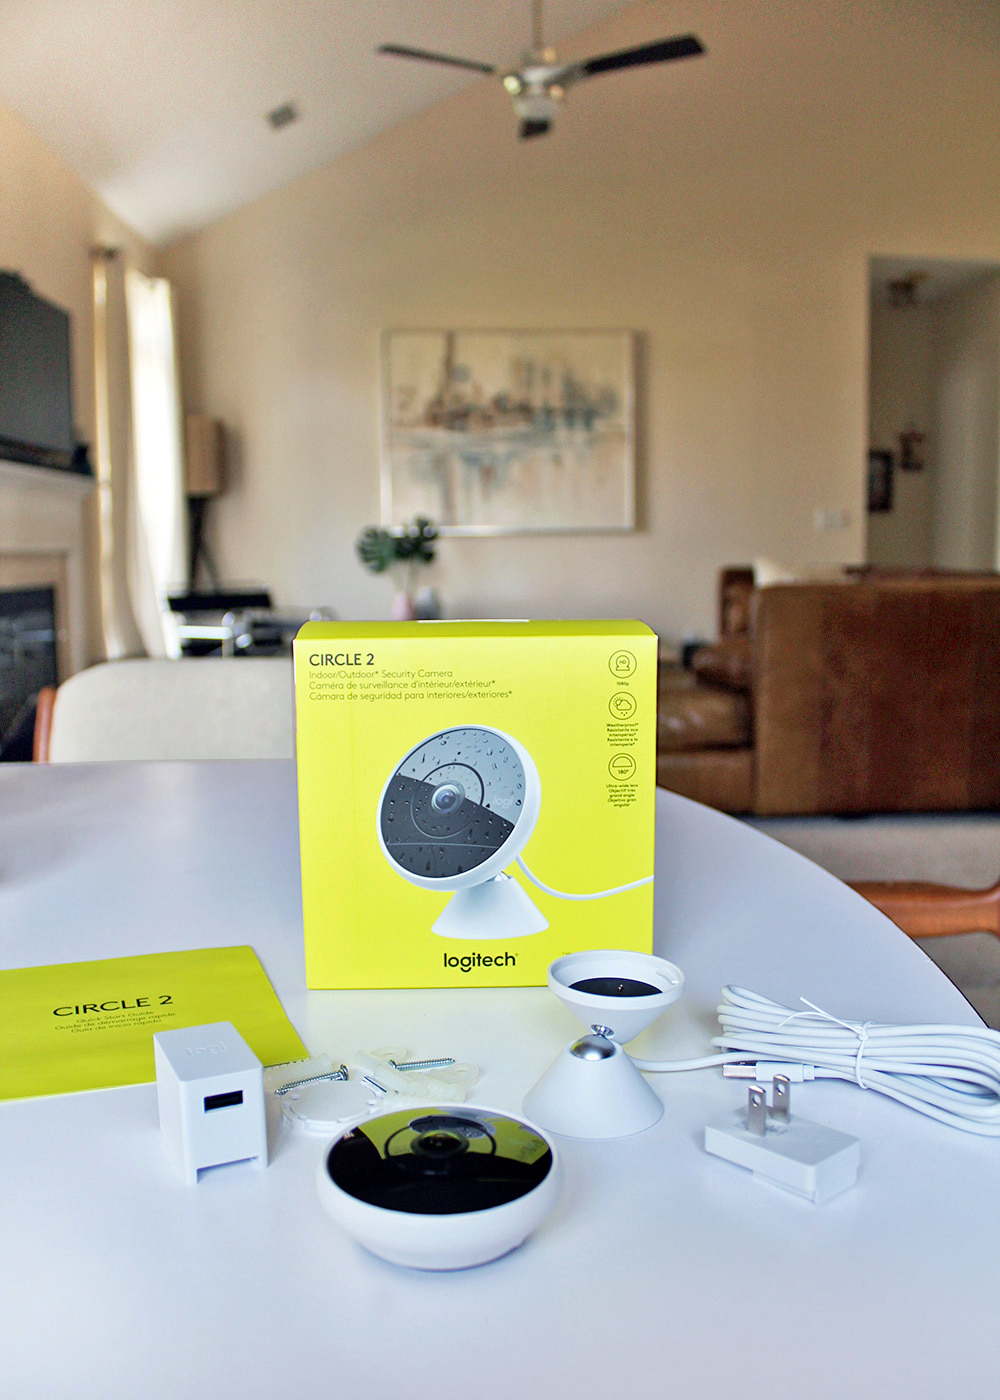 Why We Installed a Circle 2 Security Camera in Our Home #ad #CircleIt #hometech #smarttech